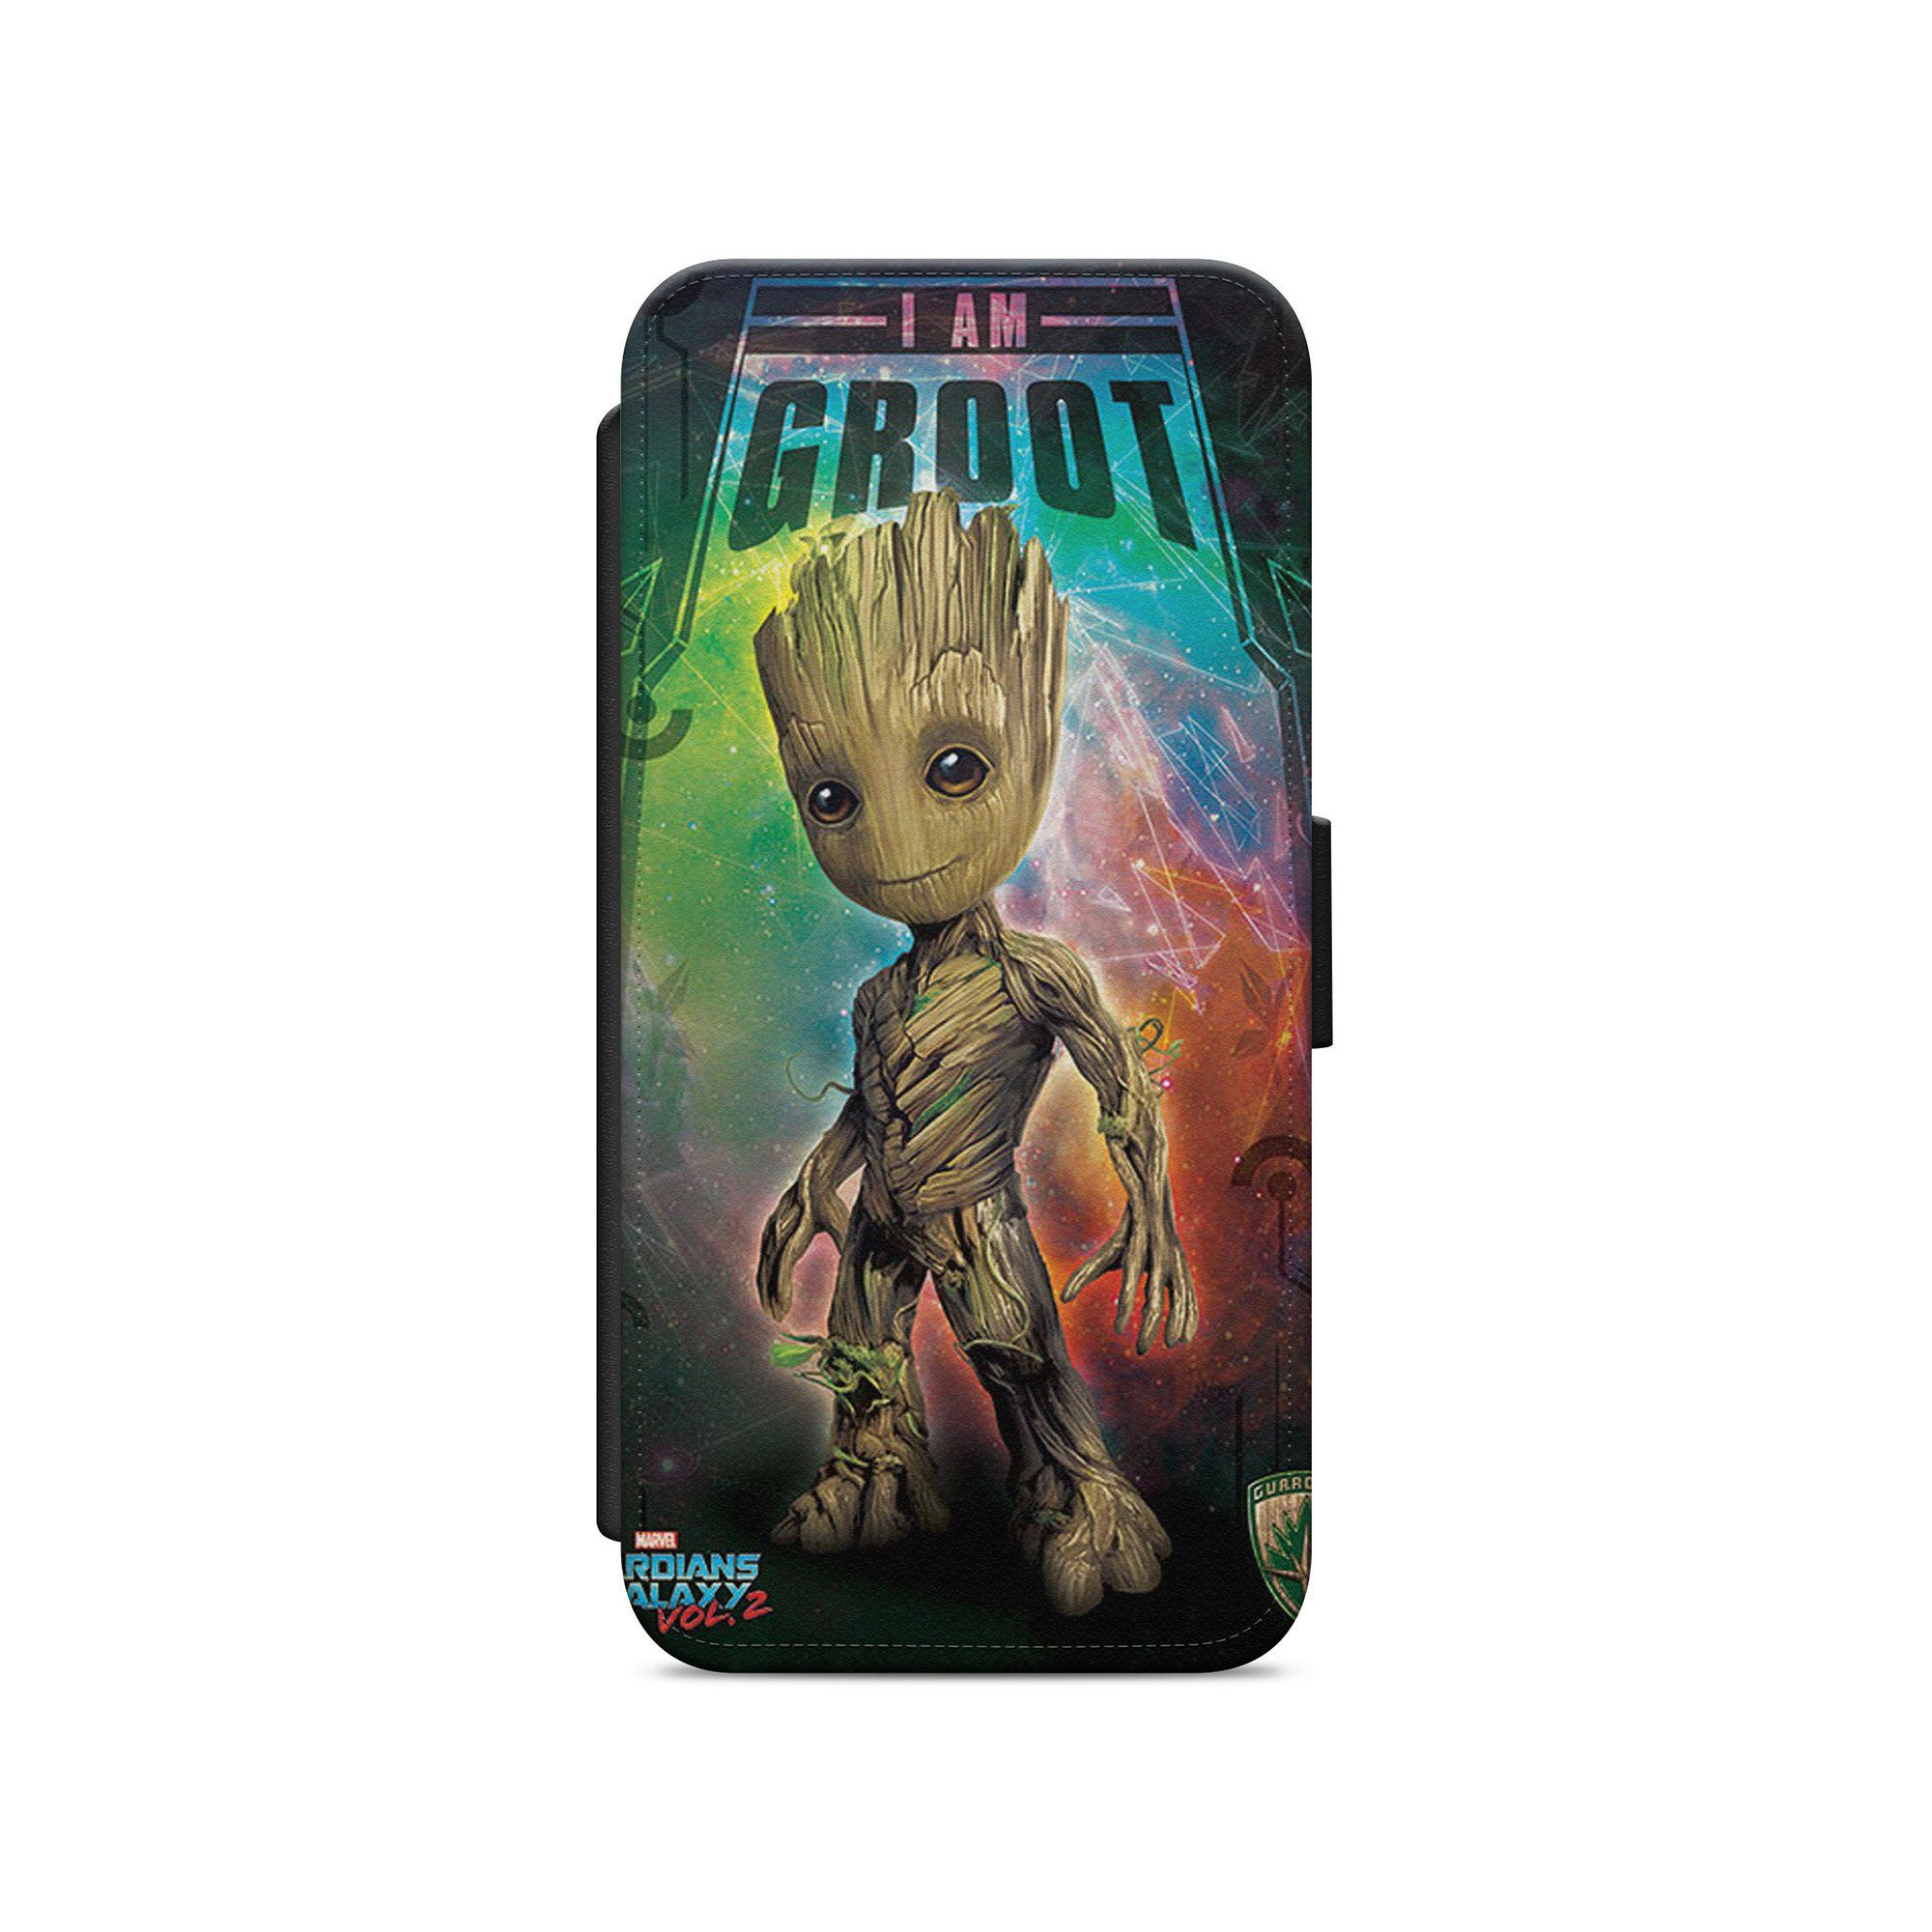 Baby groot guardians of the galaxy marvel leather wallet